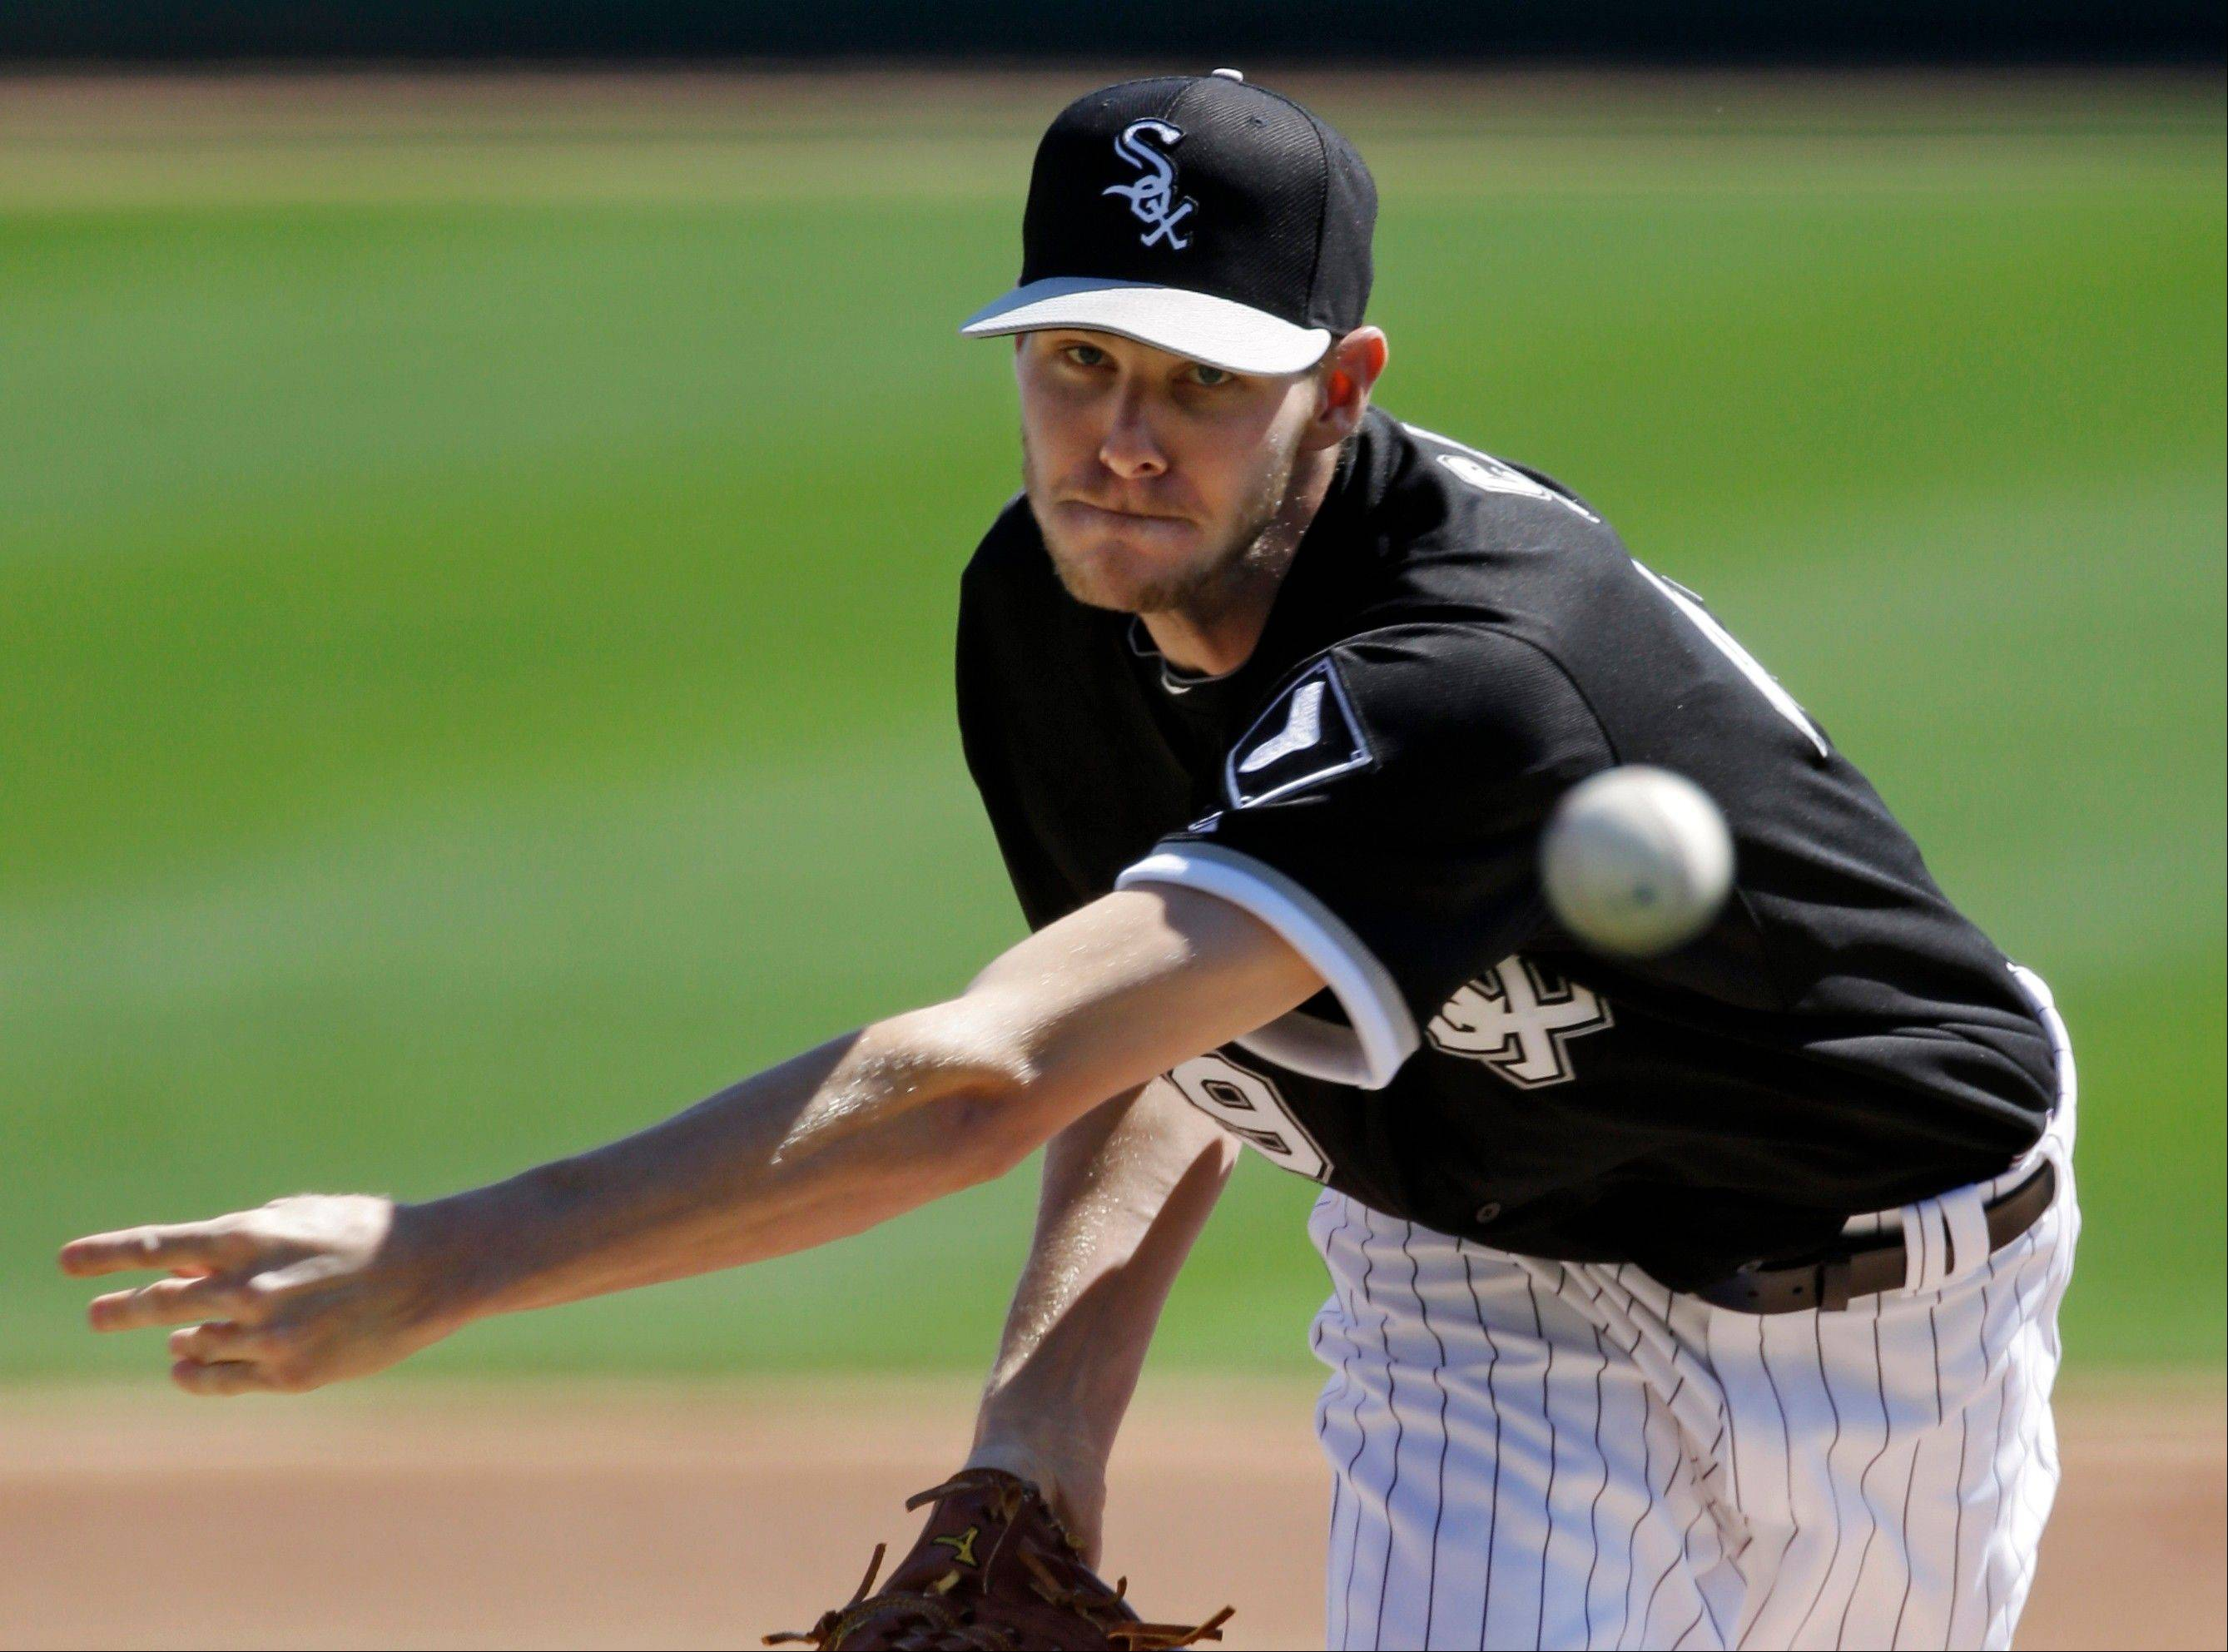 Reasons to believe White Sox will be better in 2013